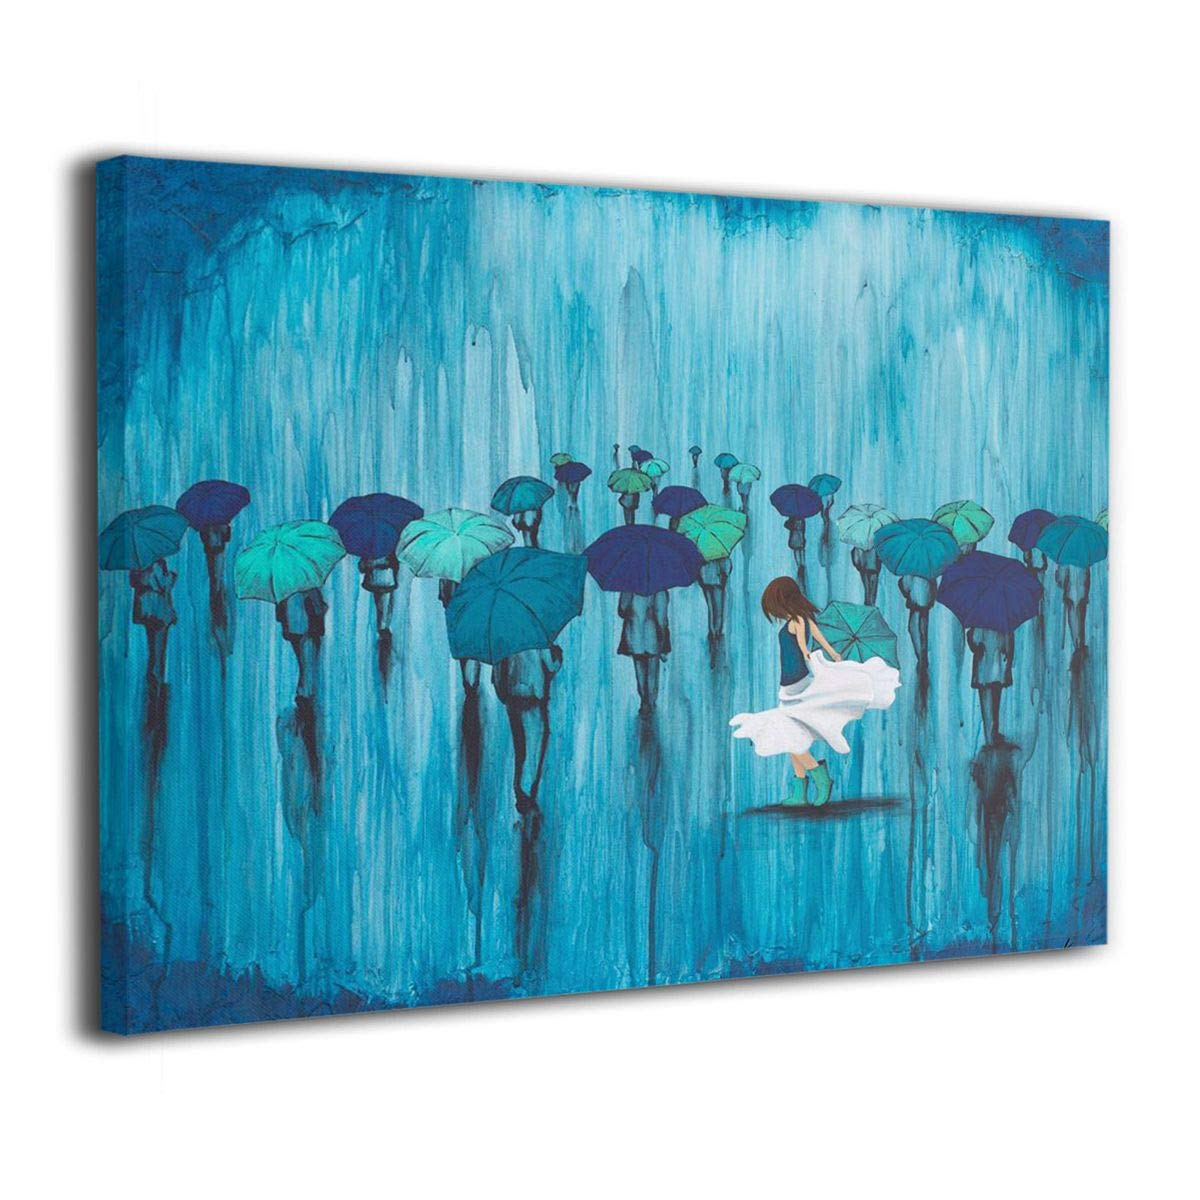 Arnold Glenn Umbrella Dance in The Rain Teal Blue Canvas Wall Art Prints Photo Contemporary Paintings Home Decoration Giclee Artwork Wood Frame Gallery Wrapped by Arnold Glenn